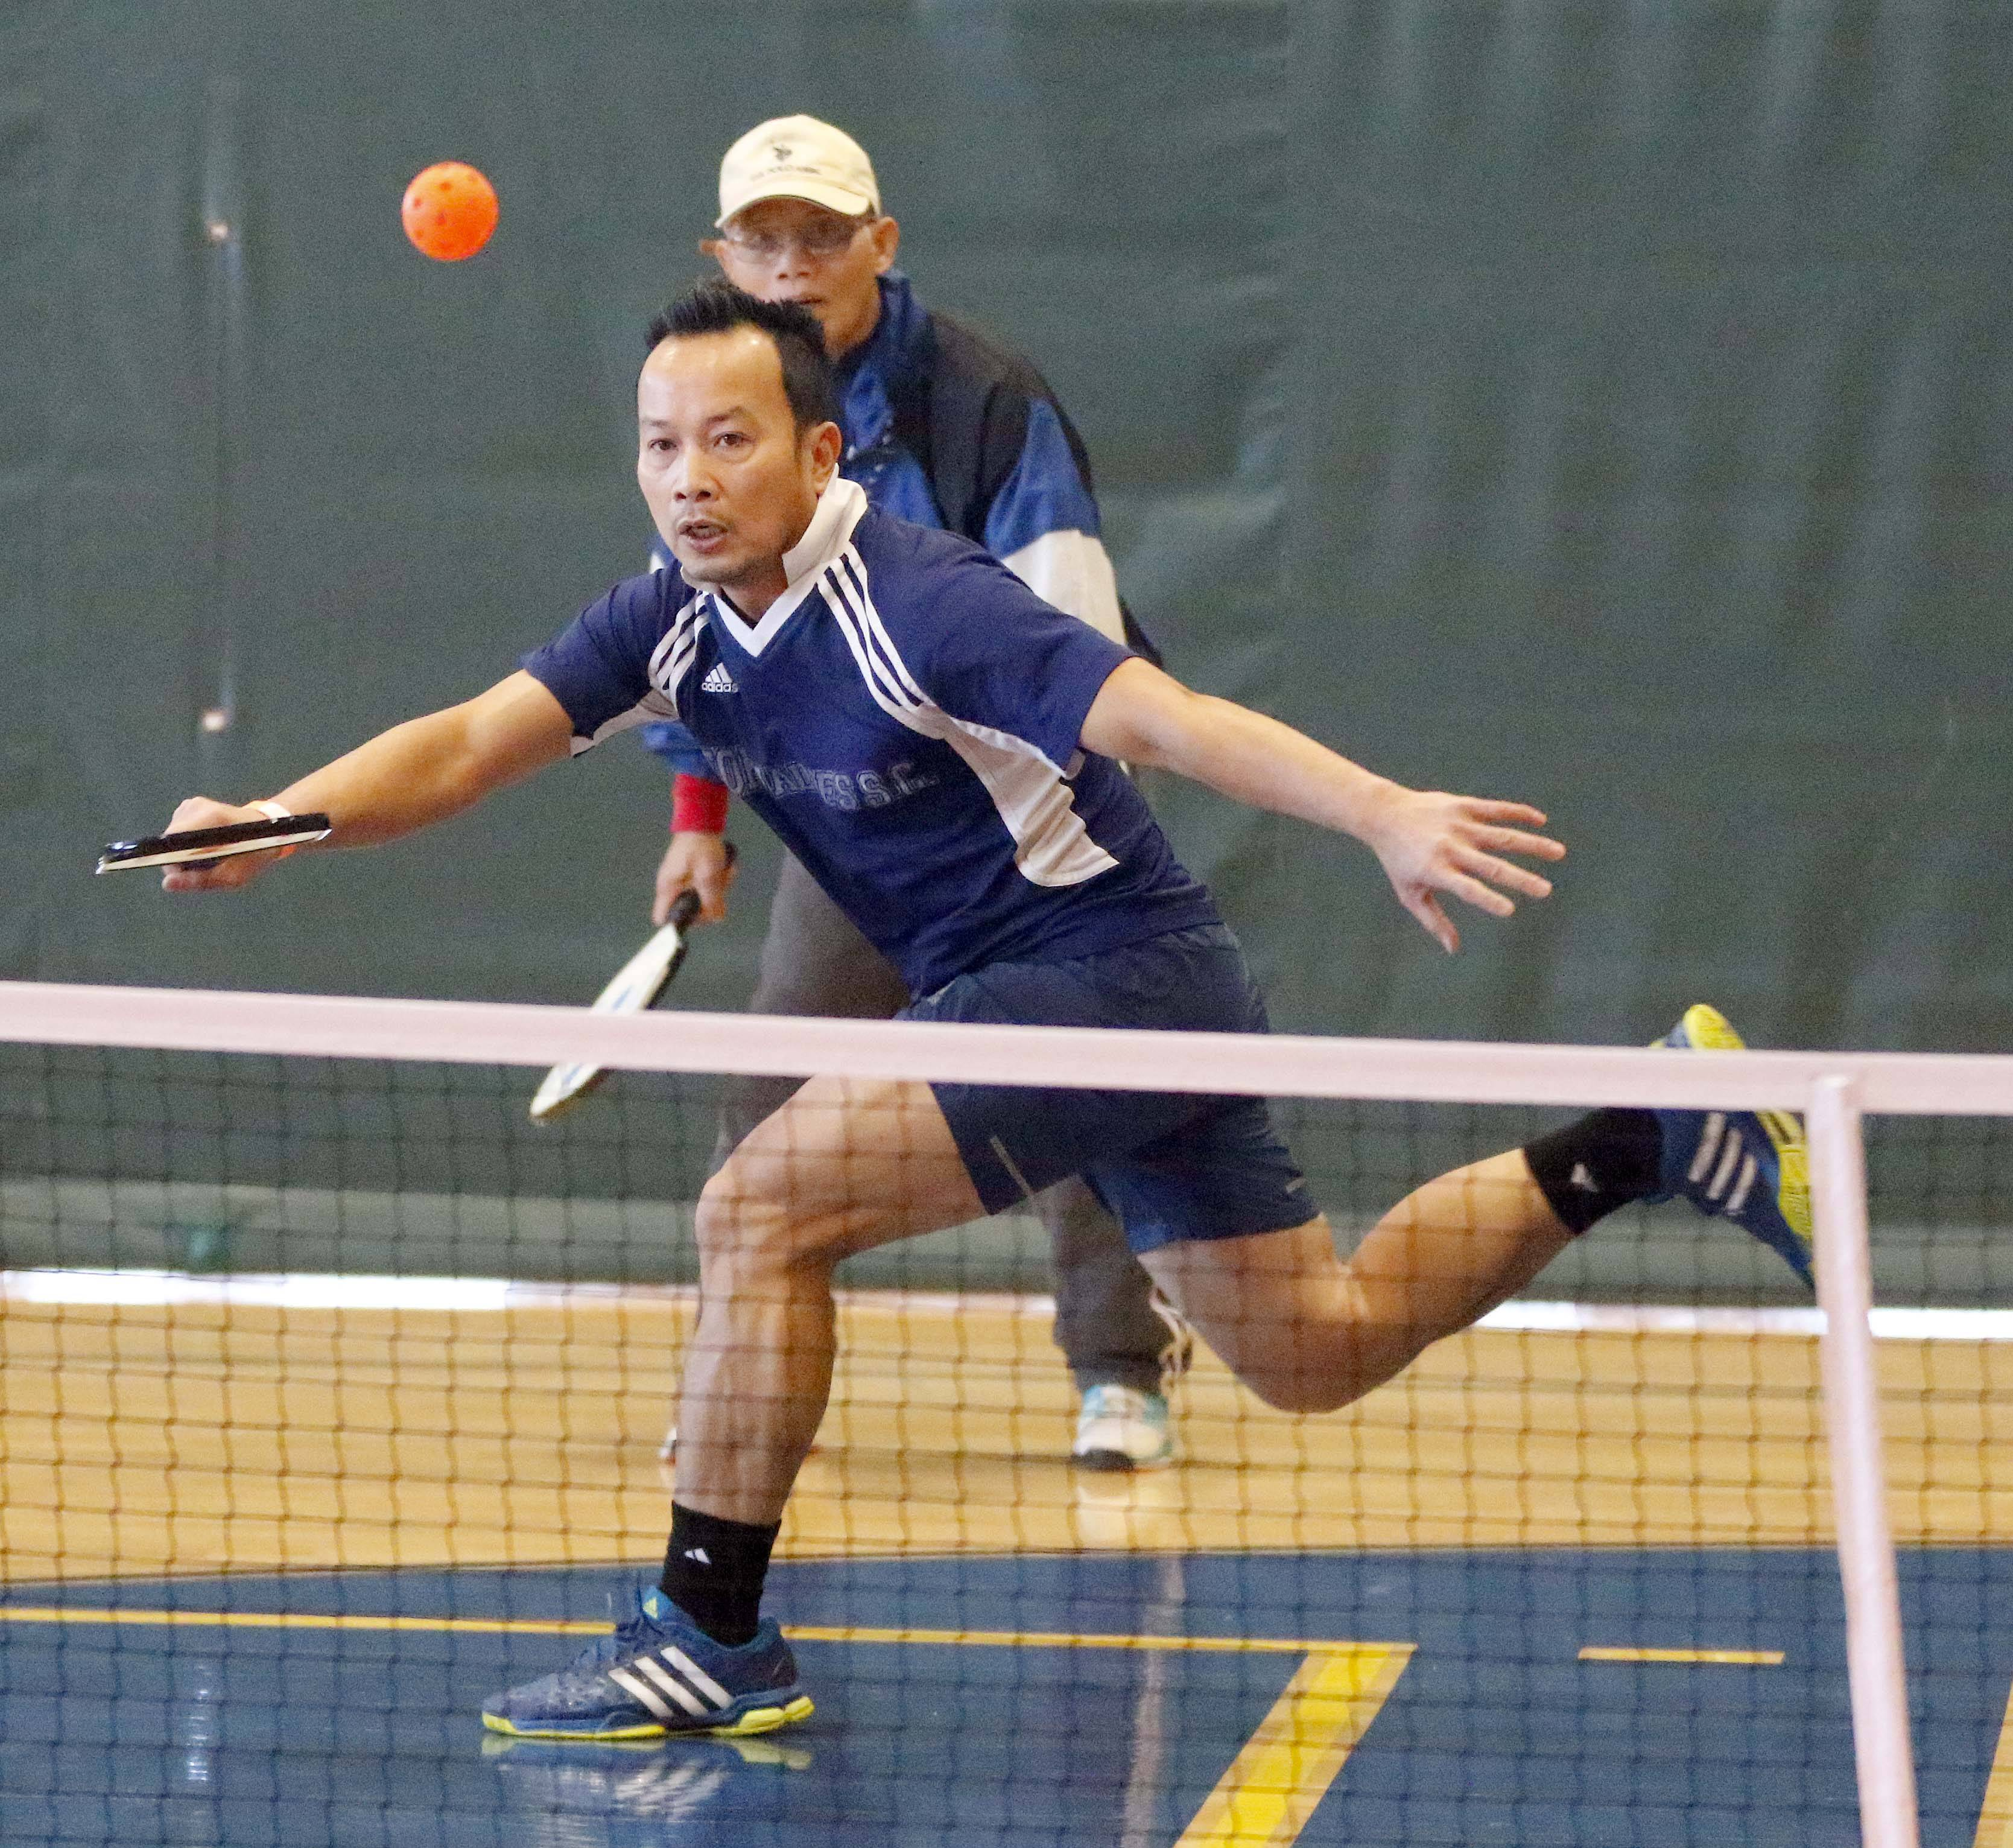 Keo Soundara of Elgin returns a shot during a pickleball class offered in Elgin that is helping to bridge a cultural gap with Elgin's Lao population.